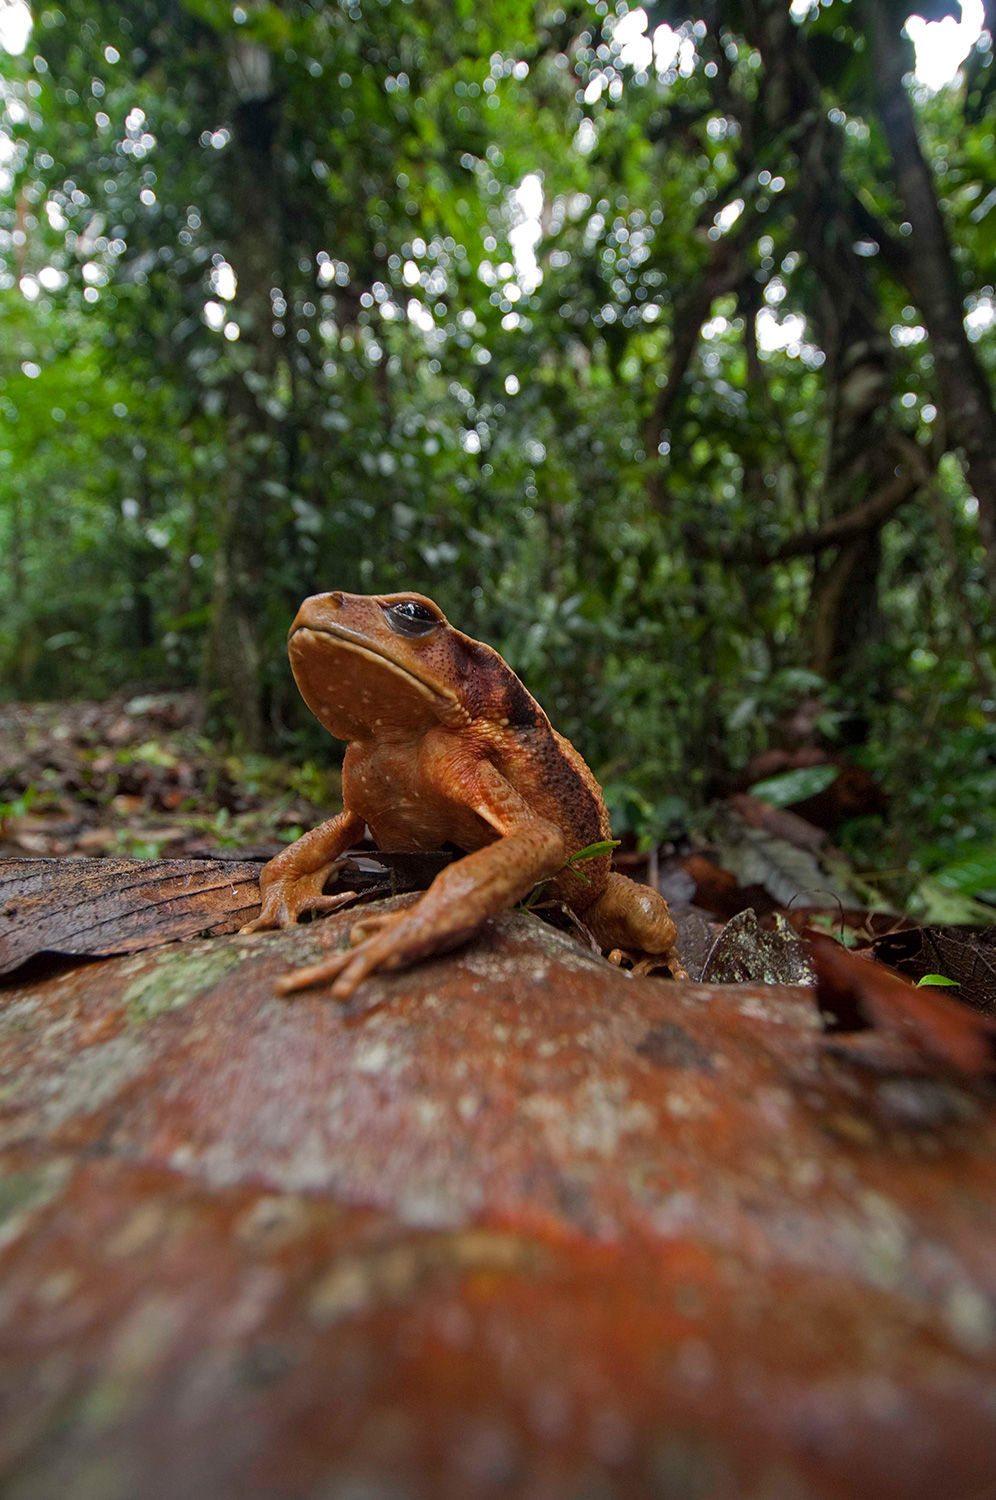 A large toad on the forest floor